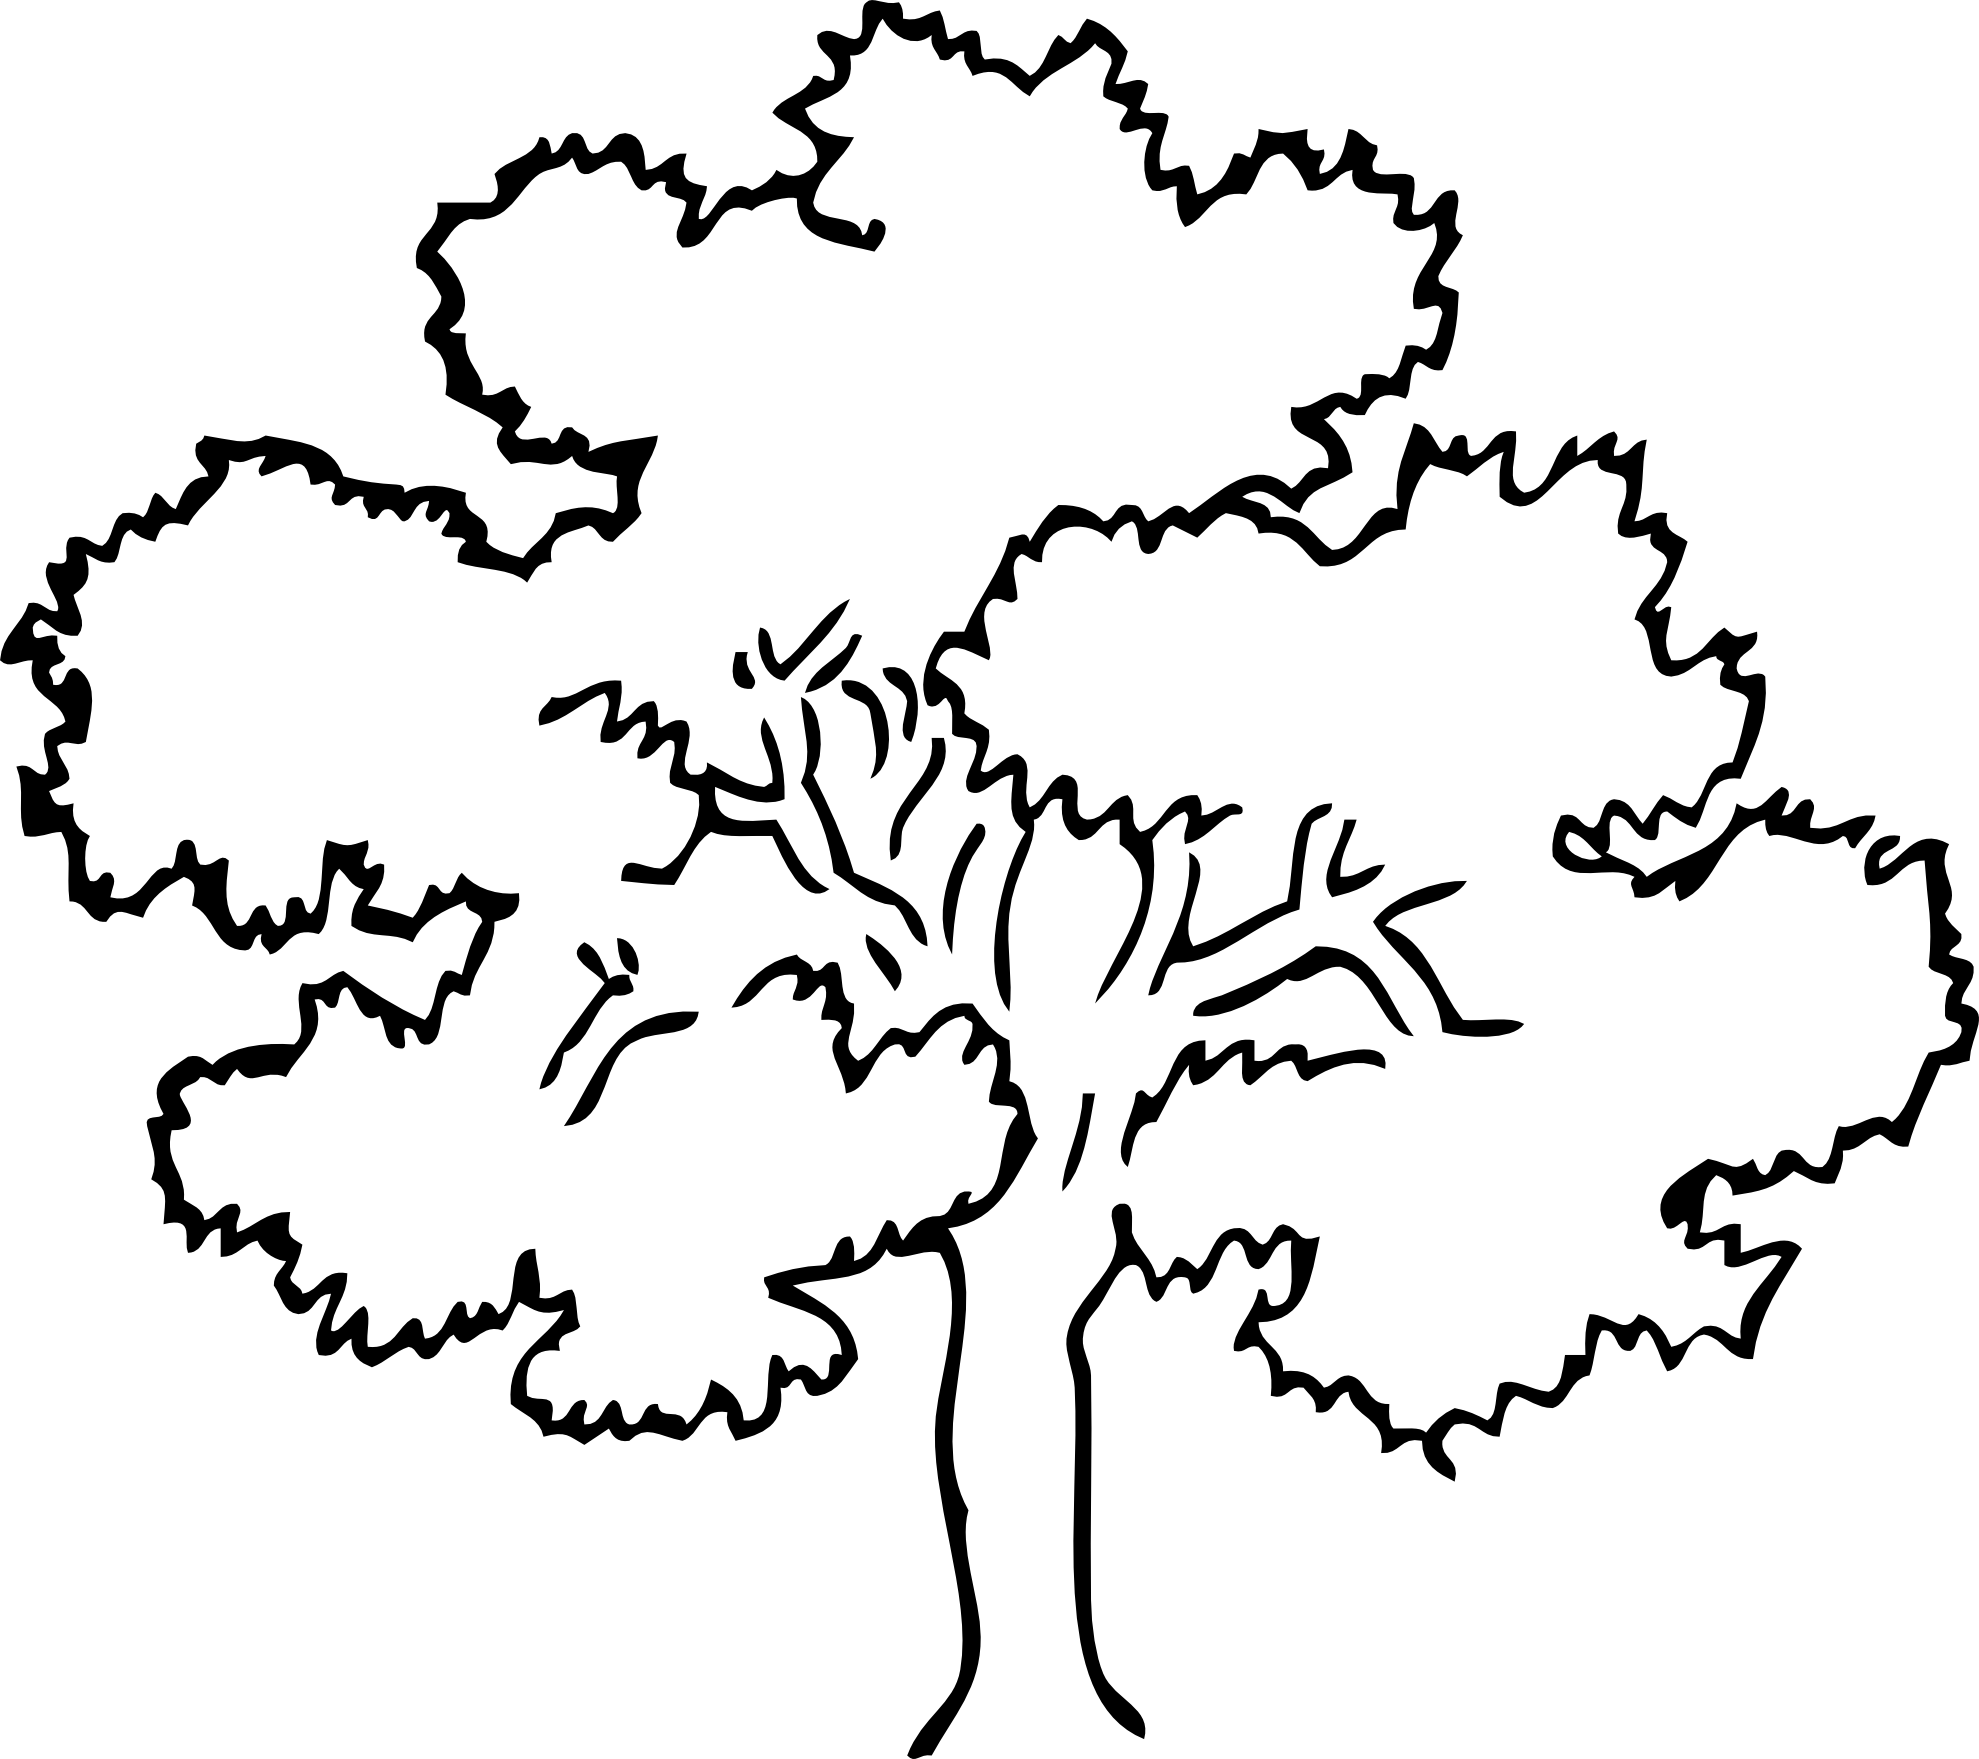 Free Oak Tree Clipart, Download Free Clip Art, Free Clip Art on ... svg black and white library